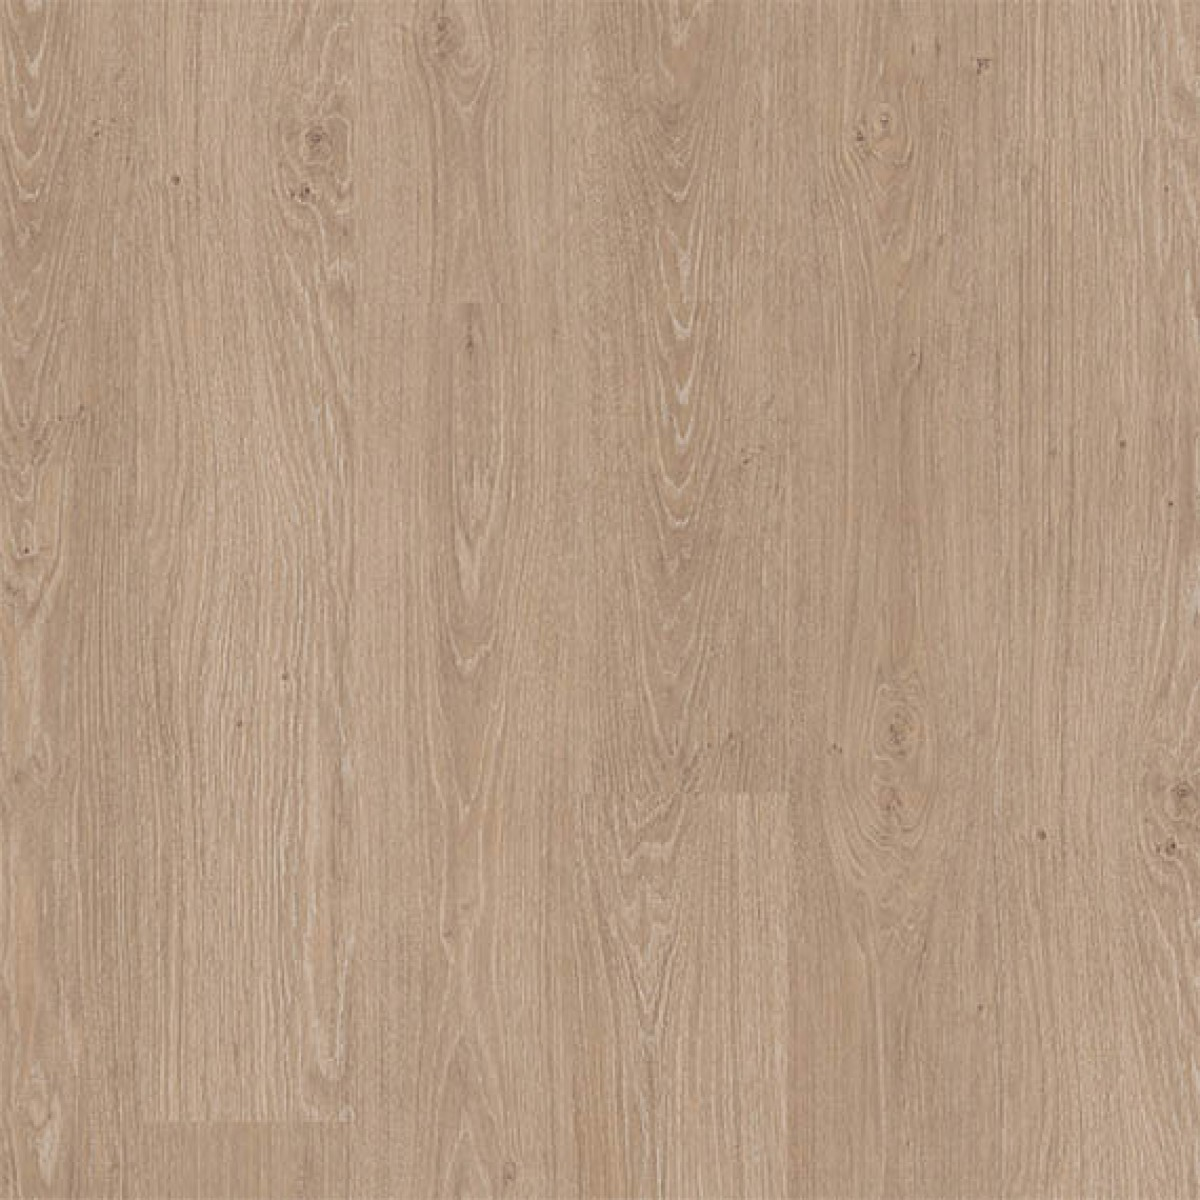 Quick-Step Livyn Comfort Classic Oak Light Beige